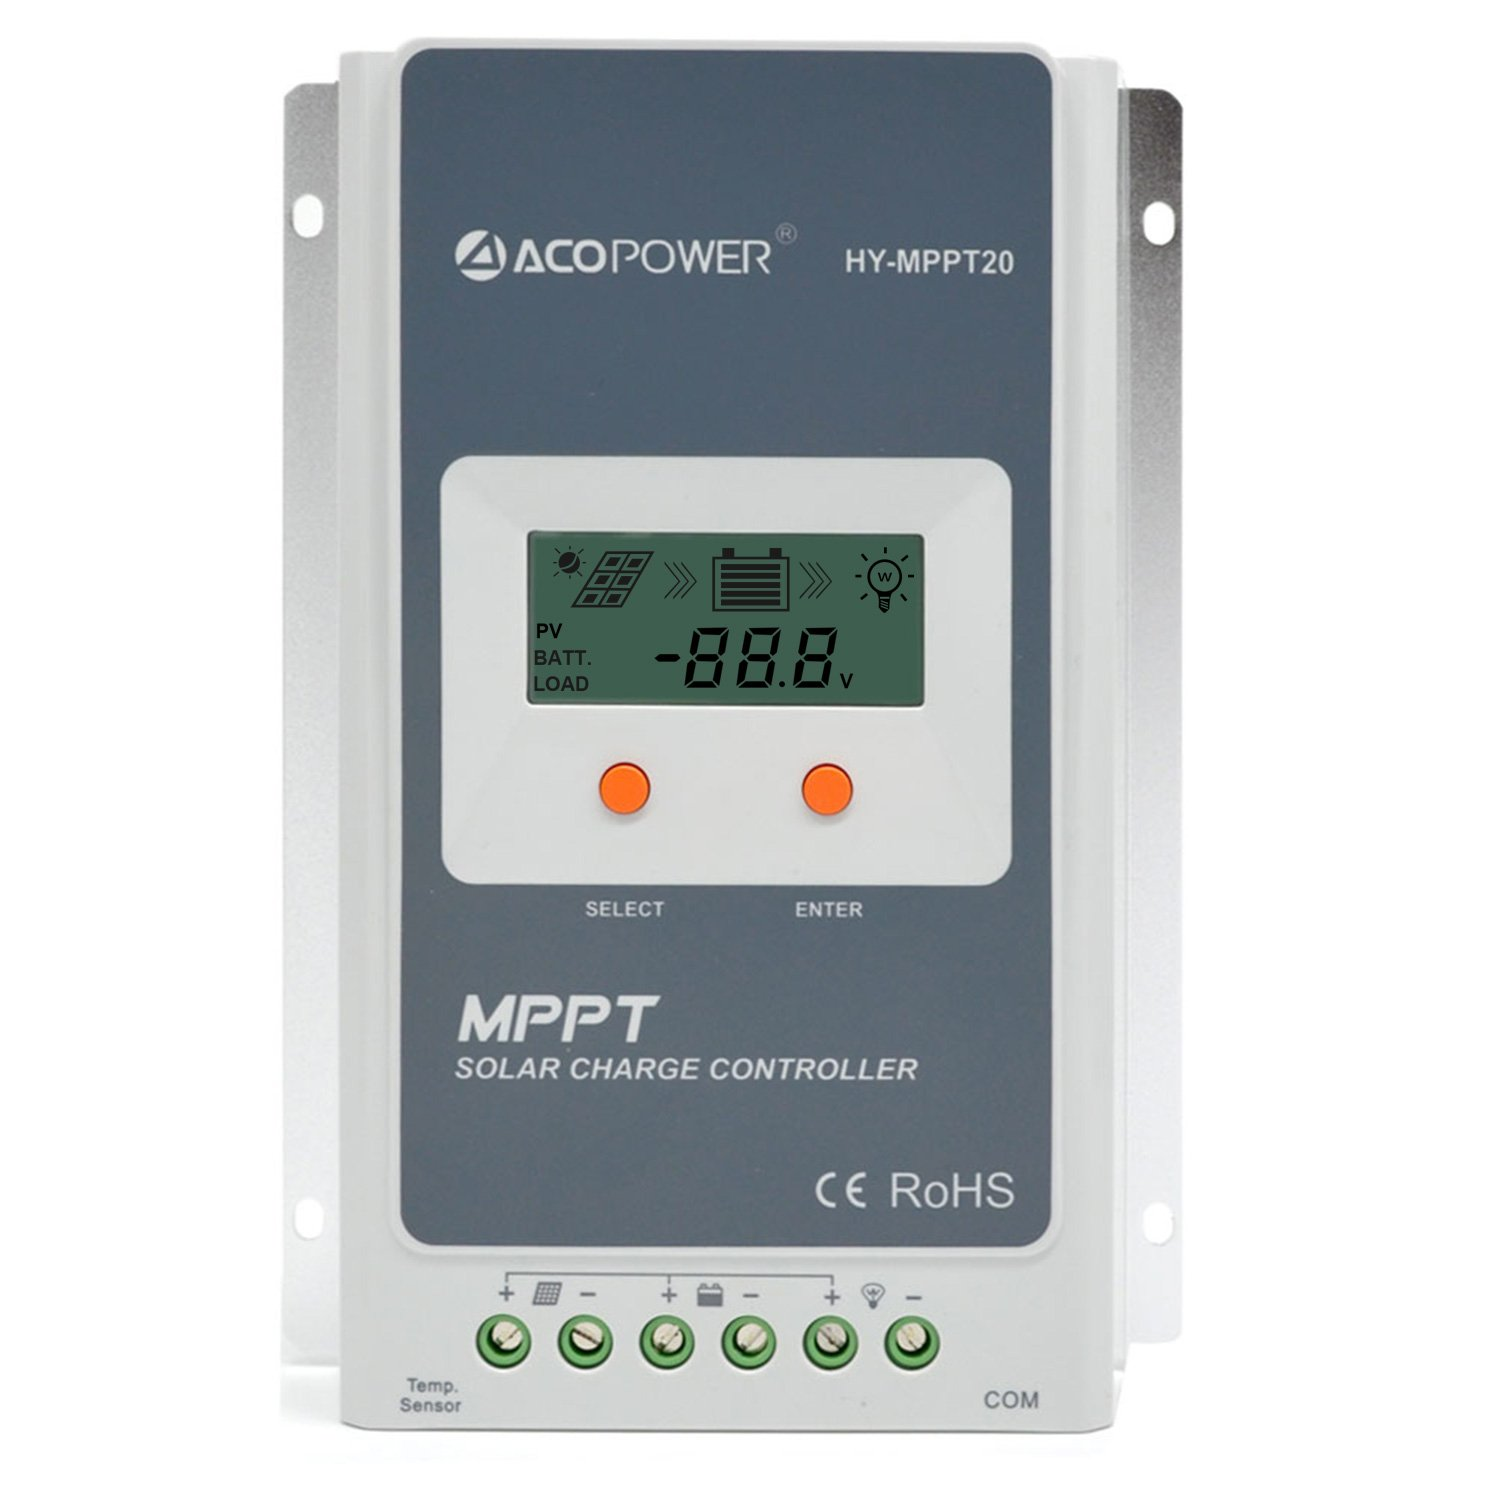 ACOPOWER 20A MPPT Solar Charge Controller 100V Input MPPT20 A with LCD Display